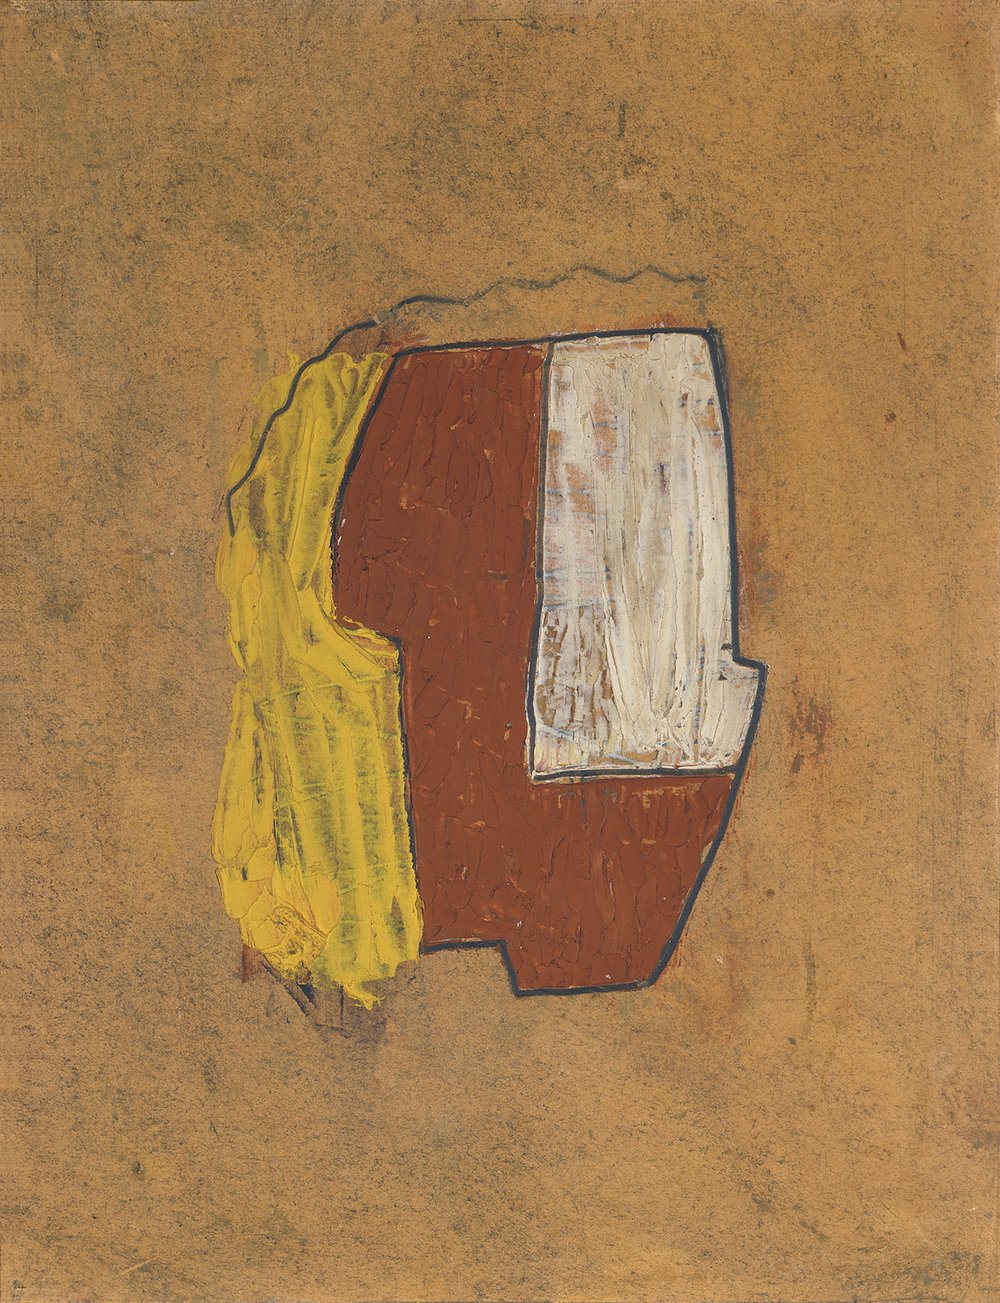 Sidney Nolan  Head of Rimbaud  1938–39 oil, boot polish and pencil on cardboard 34.3 x 26.9 cm Heide Museum of Modern Art, Melbourne Purchased from John and Sunday Reed 1980 © Sidney Nolan Trust